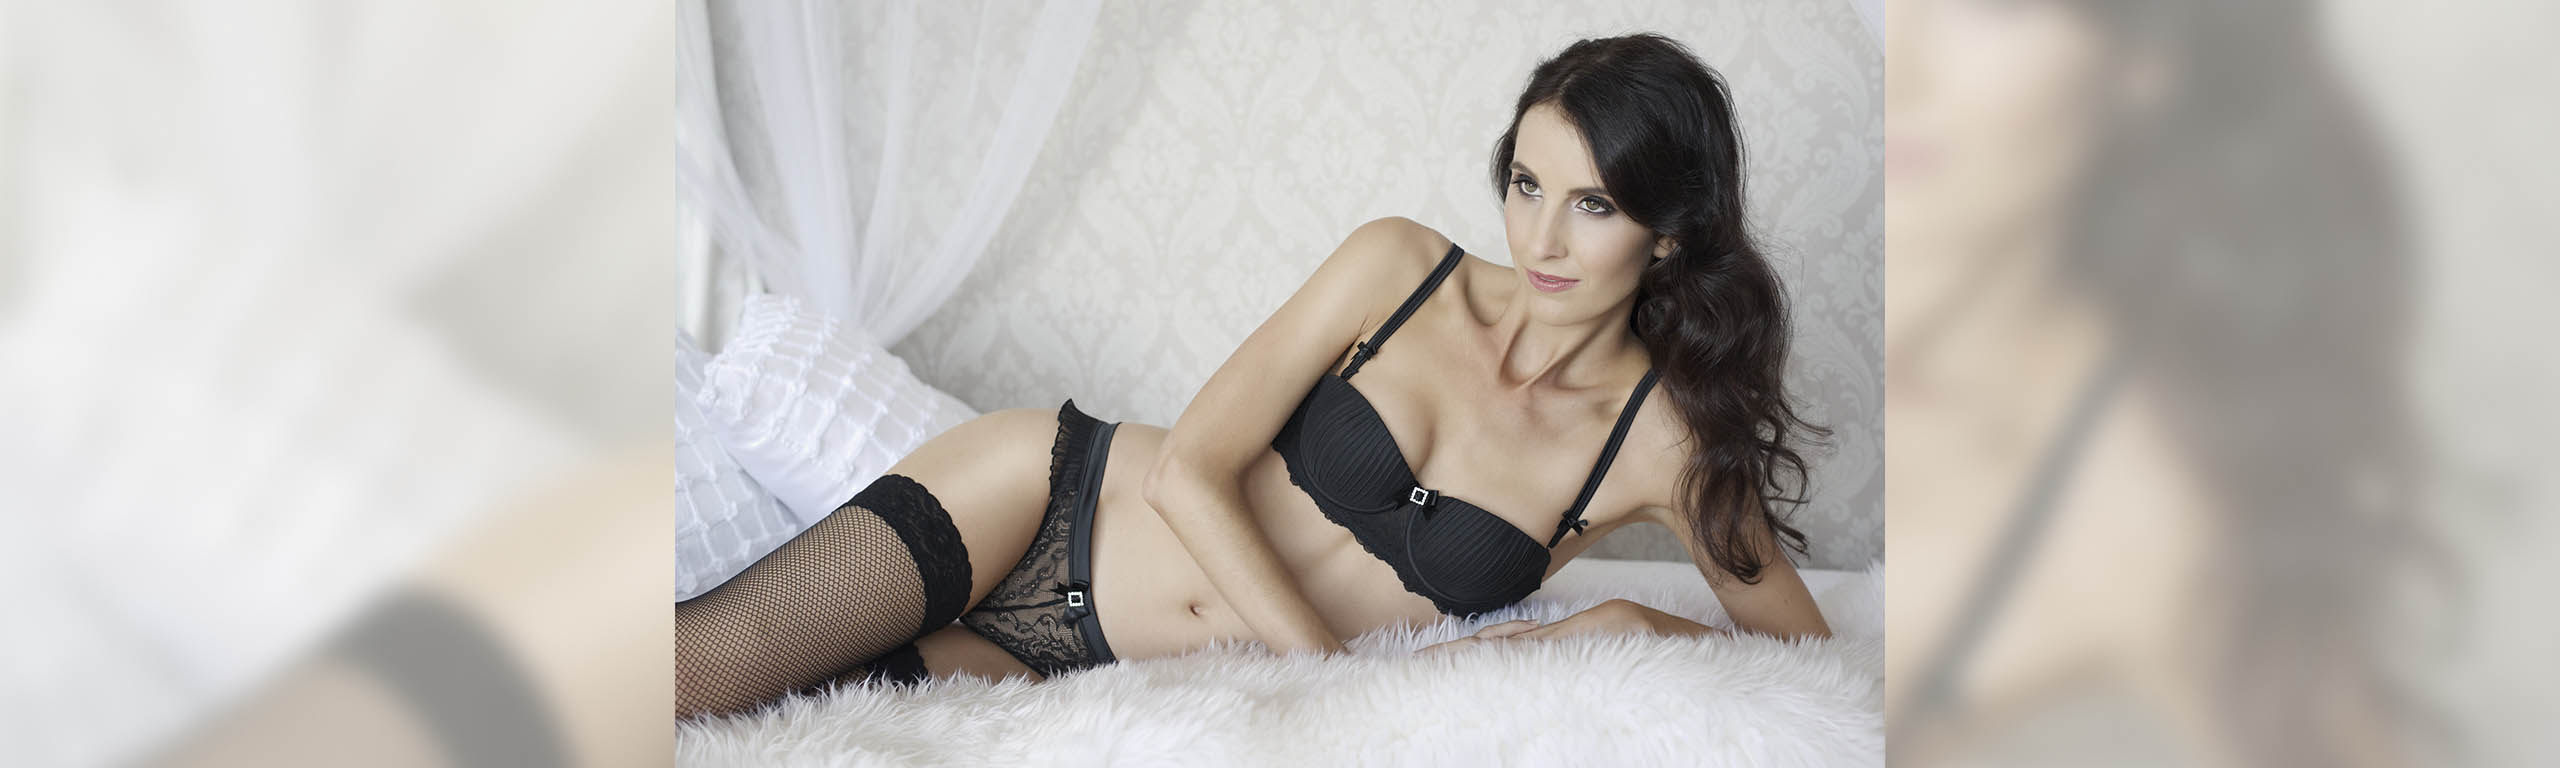 Boudoir photo of woman in lingerie